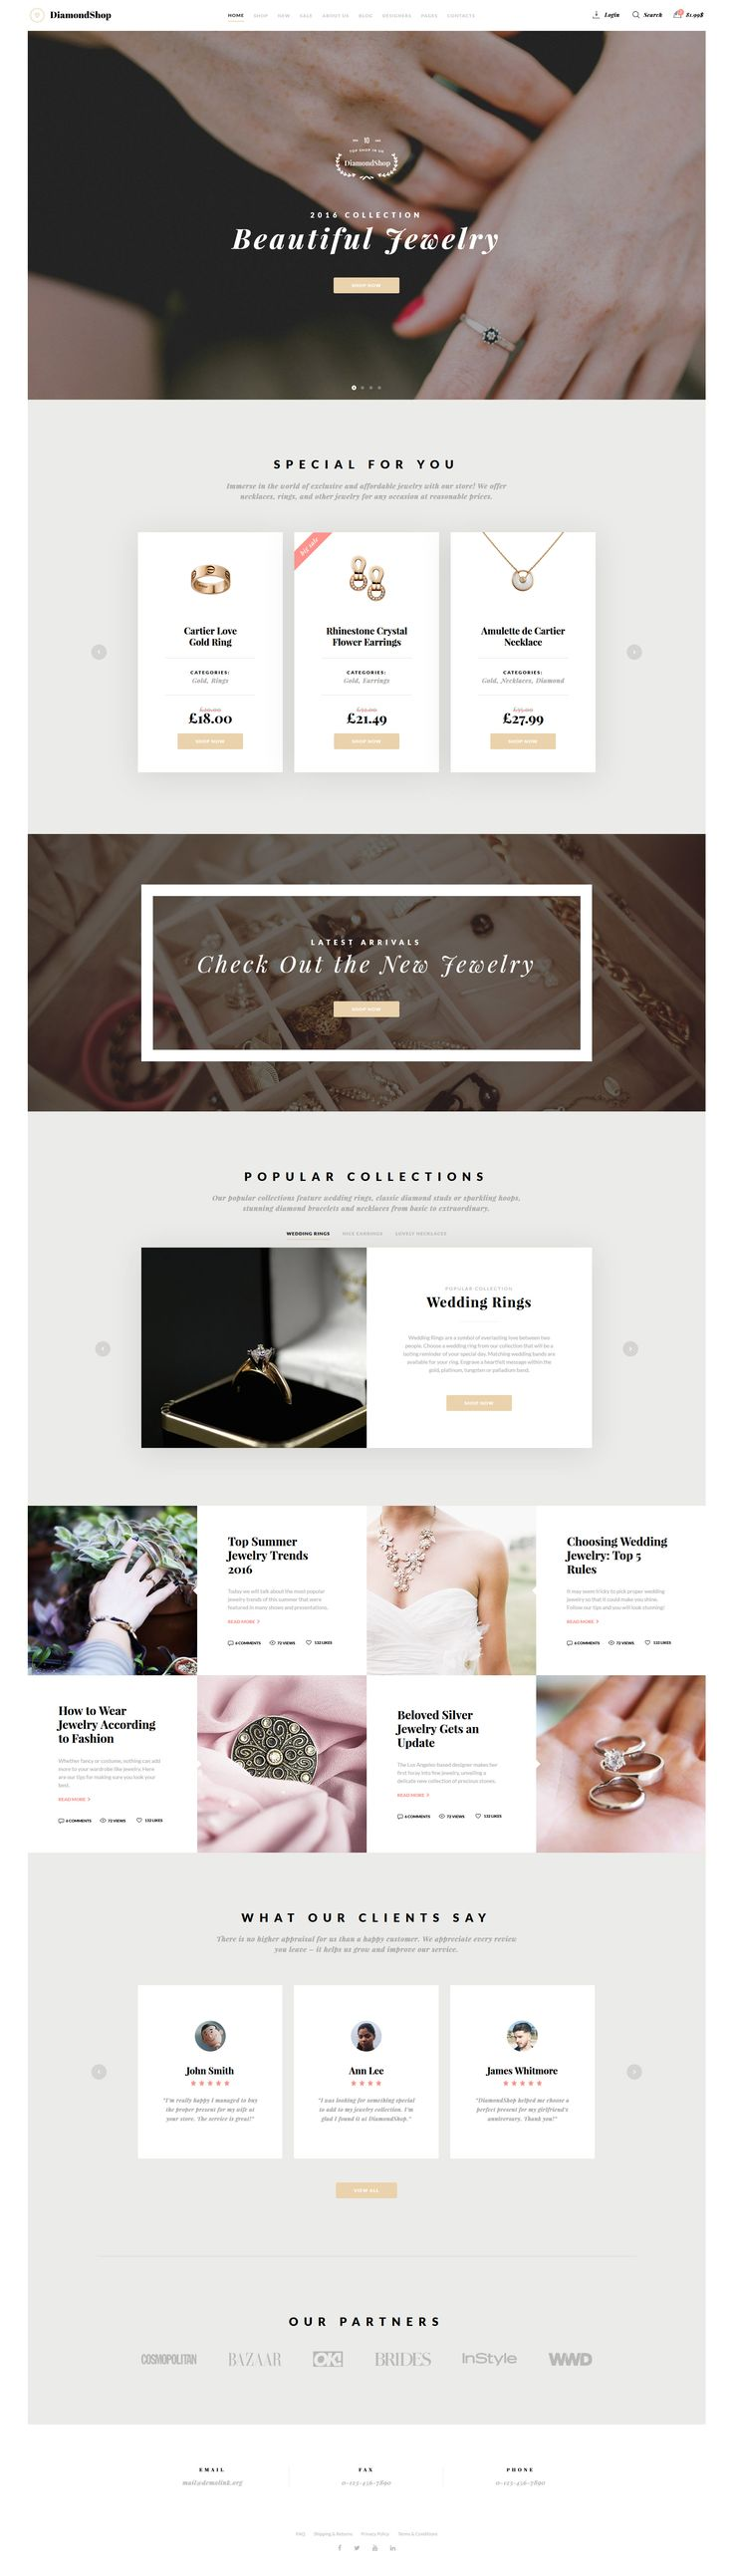 493 best images about webdesign on pinterest